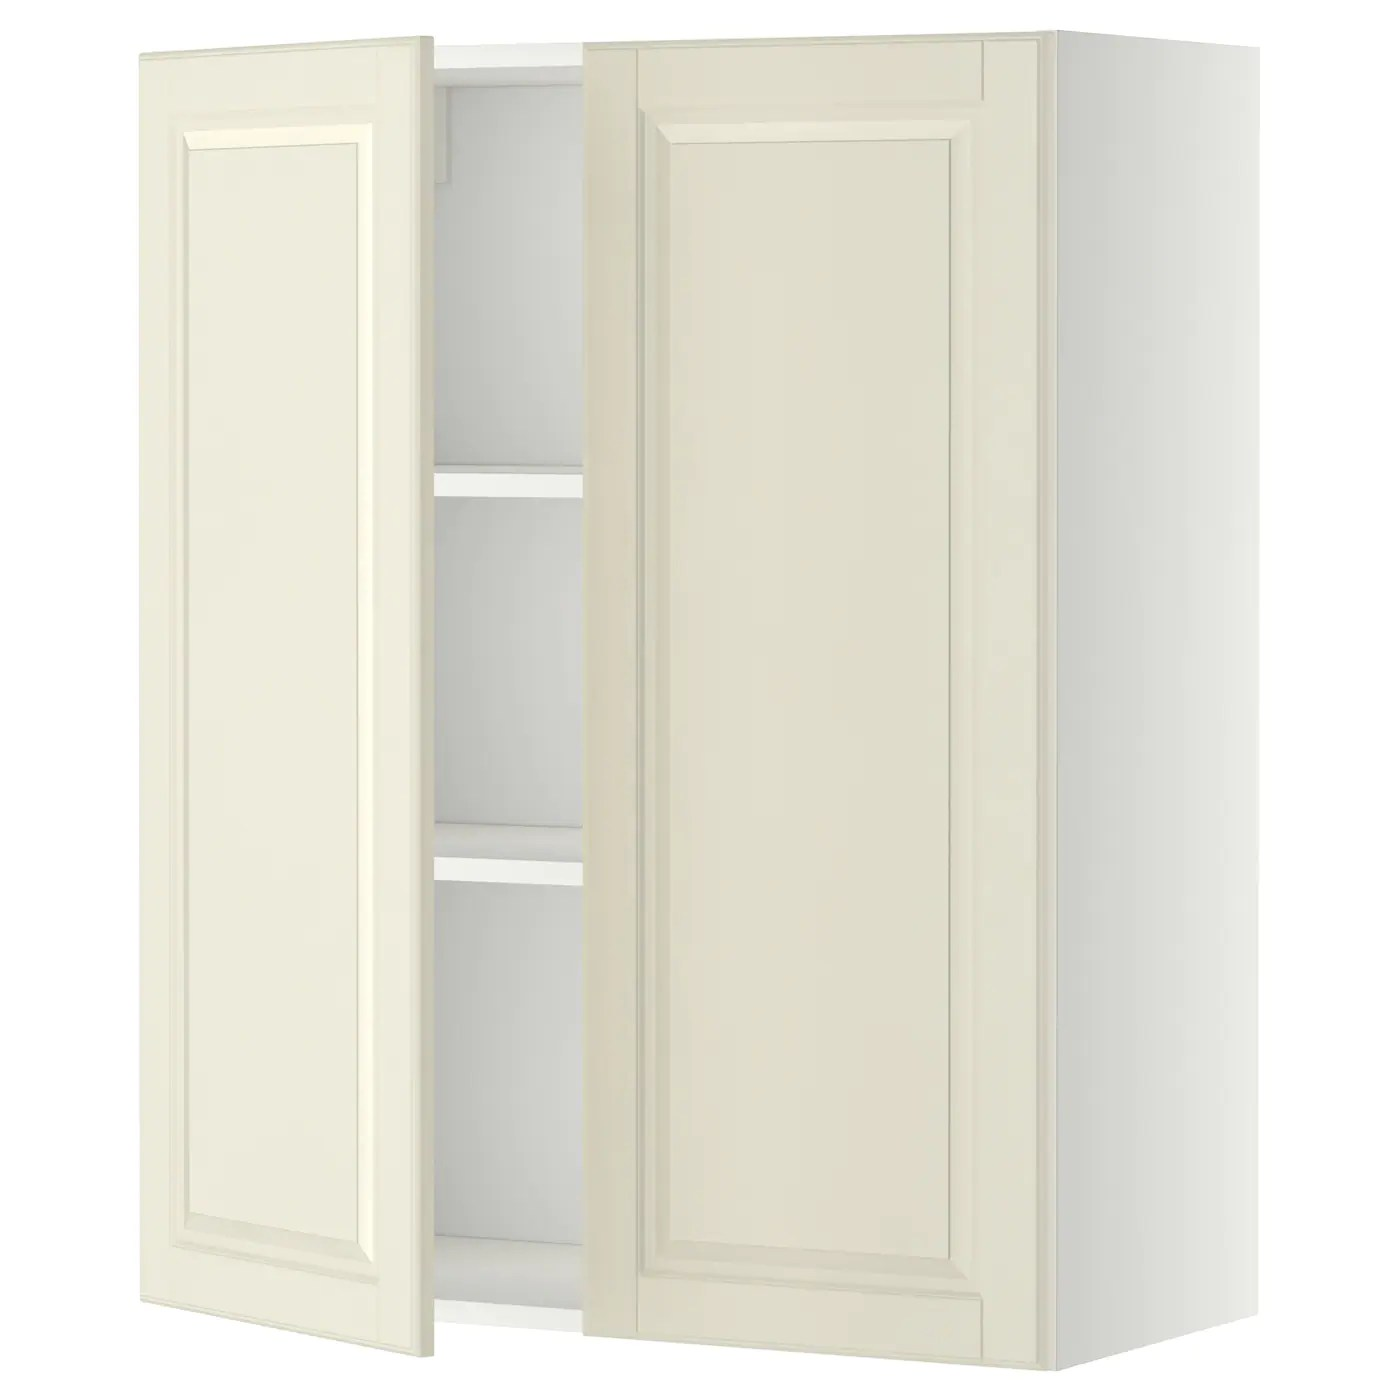 white kitchen wall cabinets table storage units ikea metod cabinet with shelves 2 doors sturdy frame construction 18 mm thick